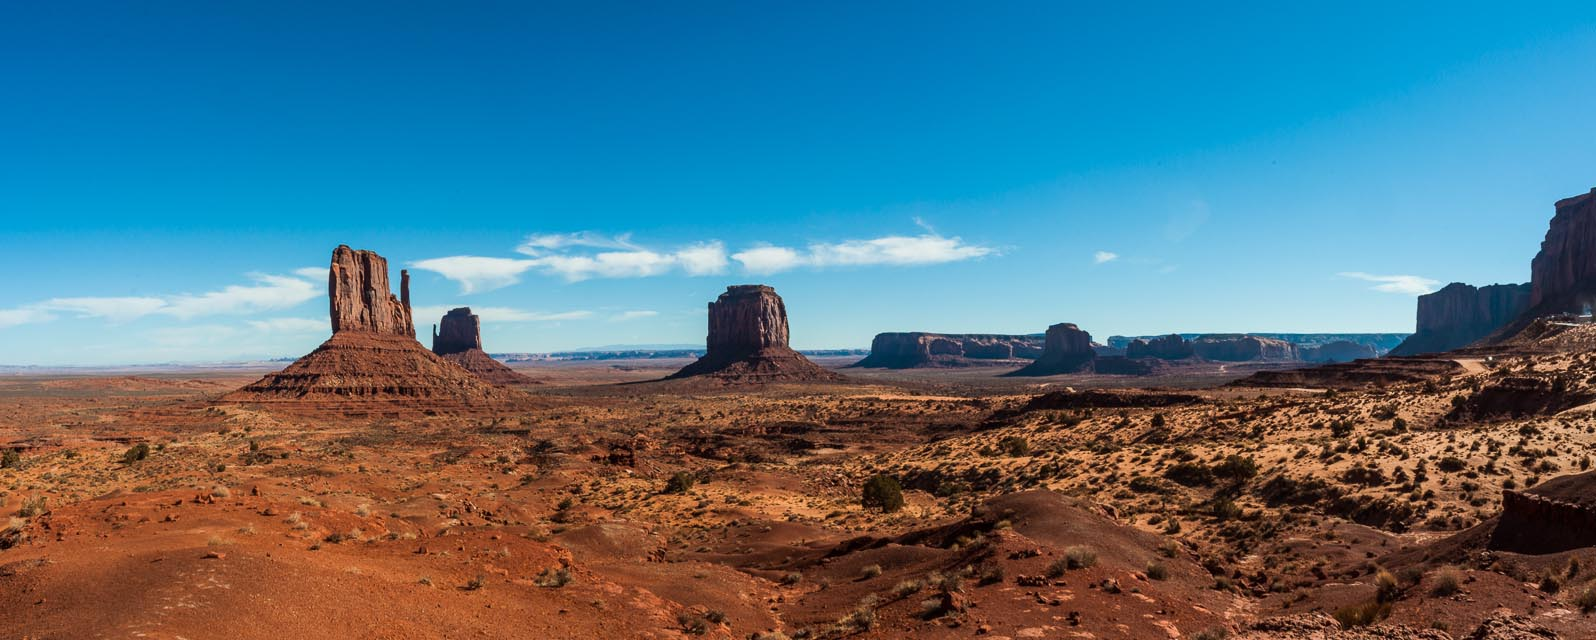 25-monumentvalley-0806-Edit